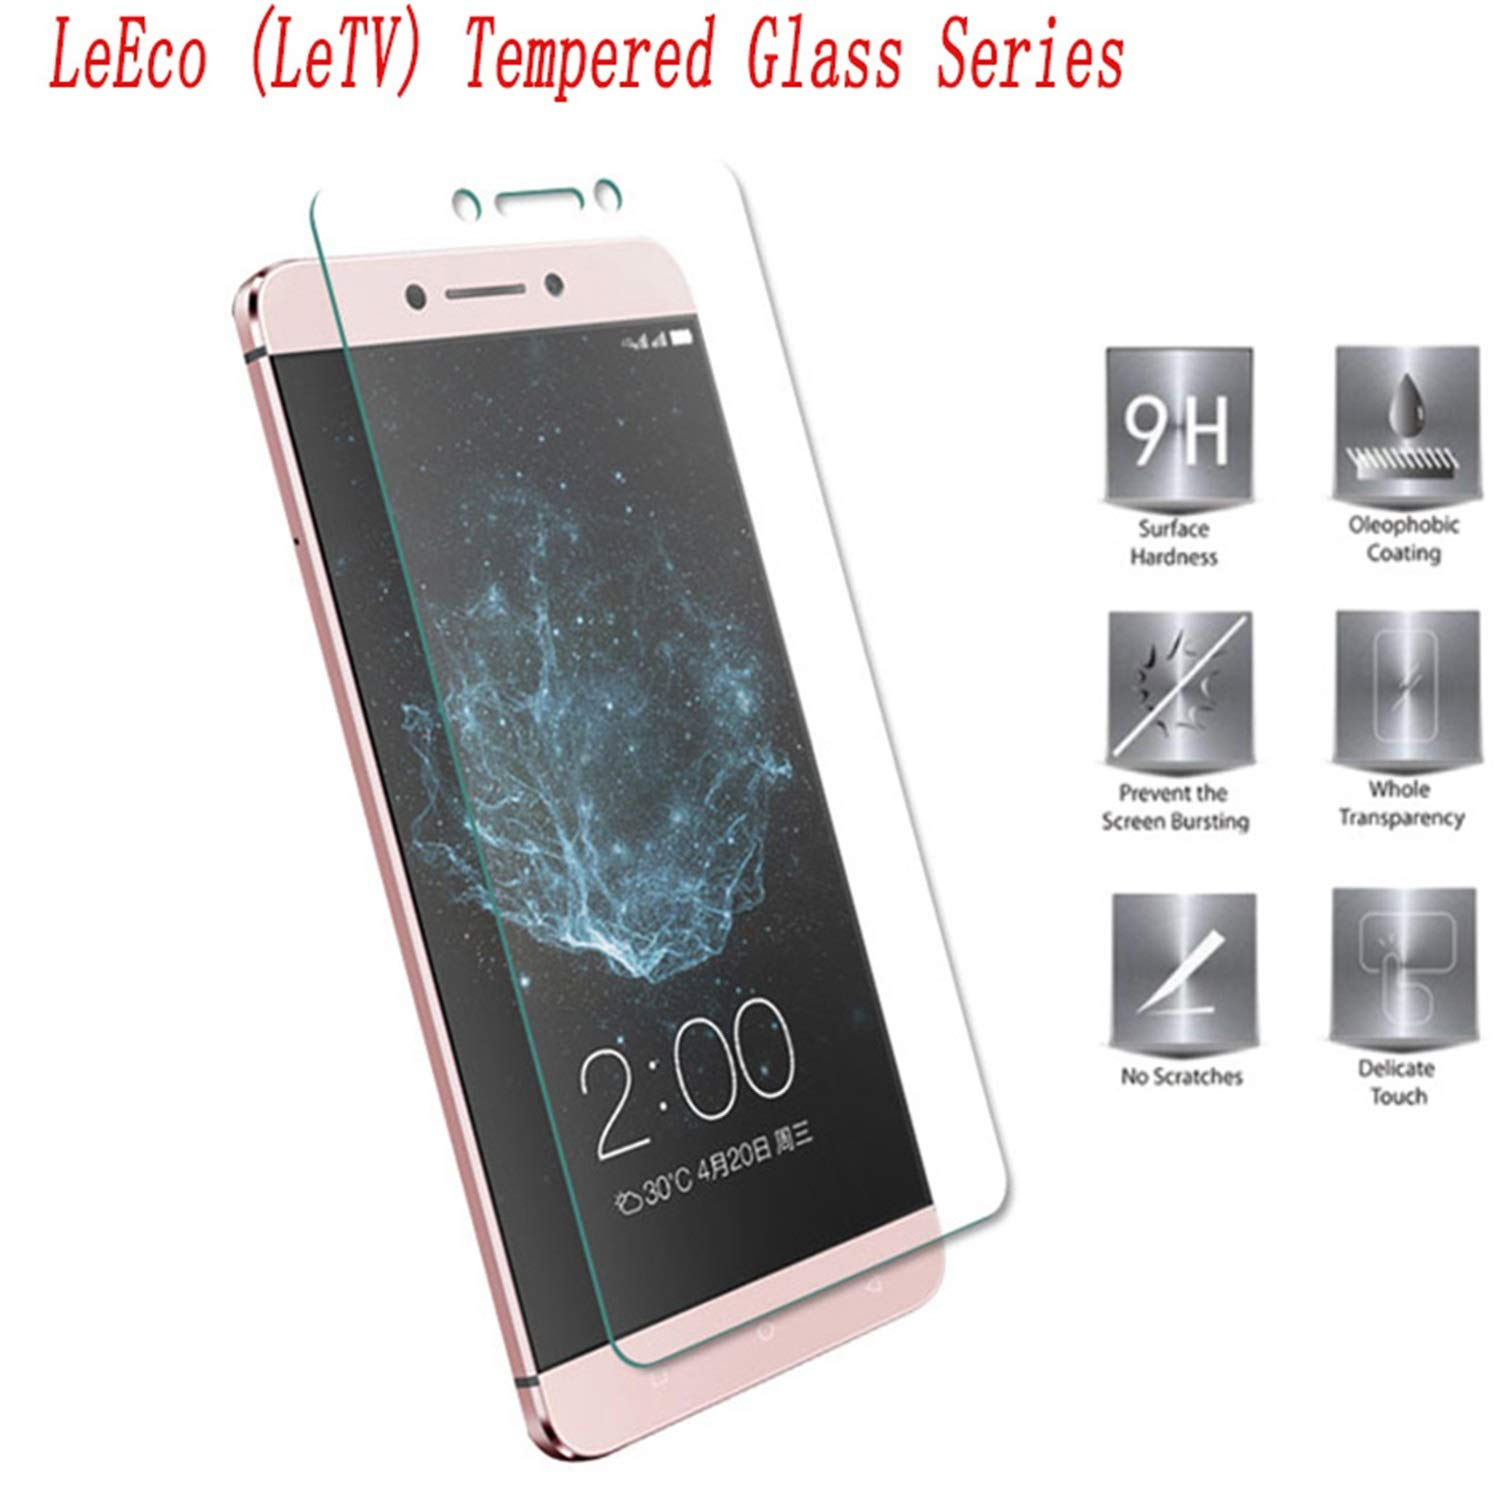 Protector de Pantalla para,2PCS Smartphone Tempered Glass Protective Film Screen Protector For Leeco Letv One Pro Cool 1 Le 2 Pro 1S S3 MAX 2 Le 2: Amazon.es: Electrónica